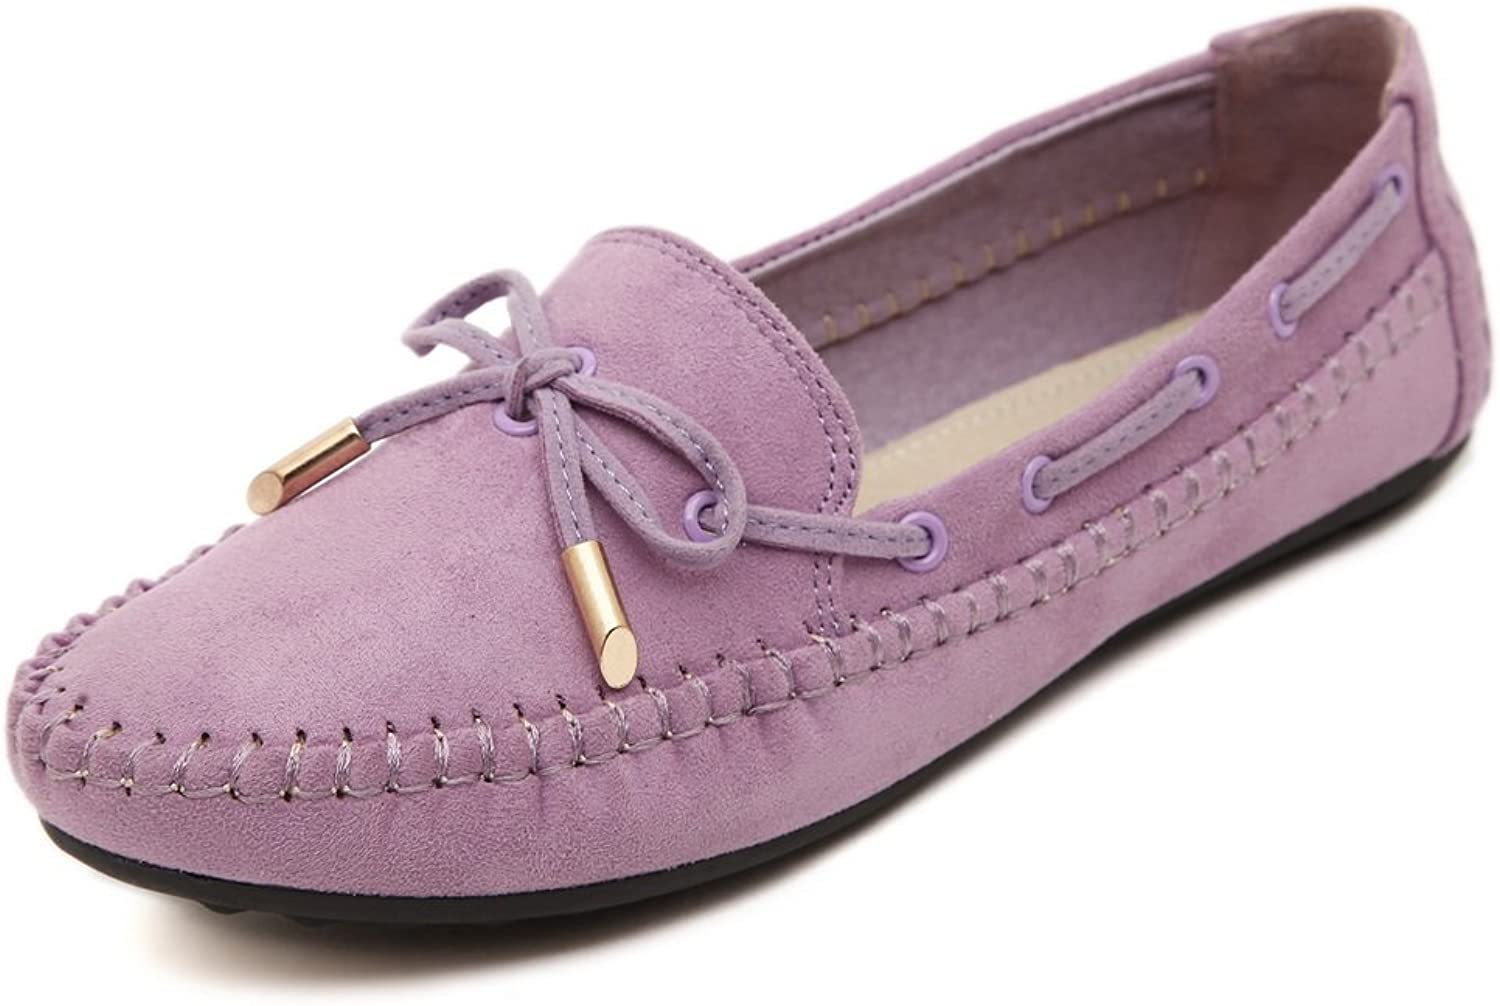 AdeeSu Womens Bows Round-Toe Solid Suede Flats shoes